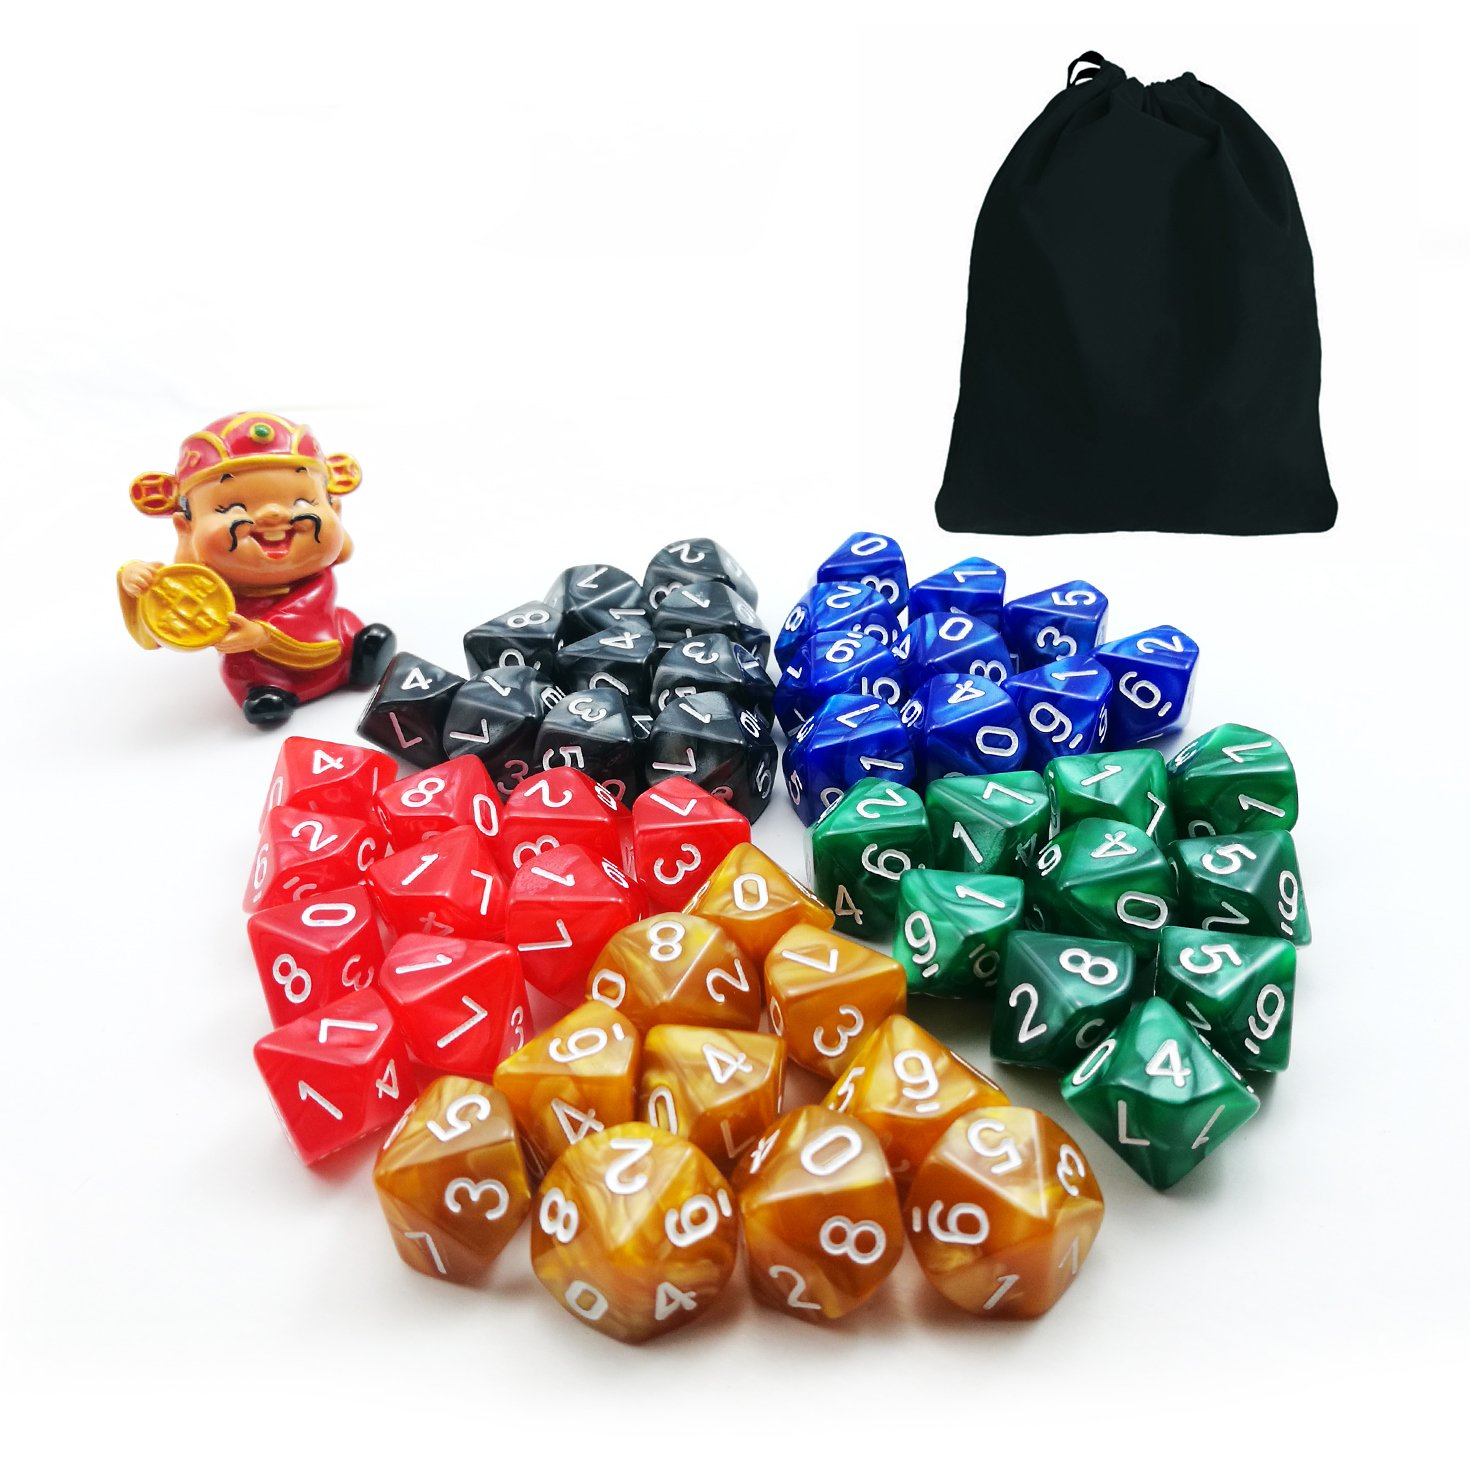 BESCON DICE 50pcs Assorted D10 Pack, 5X10pcs 10 Sides Dice Marble Polyhedral Dice D10 Set by BESCON DICE